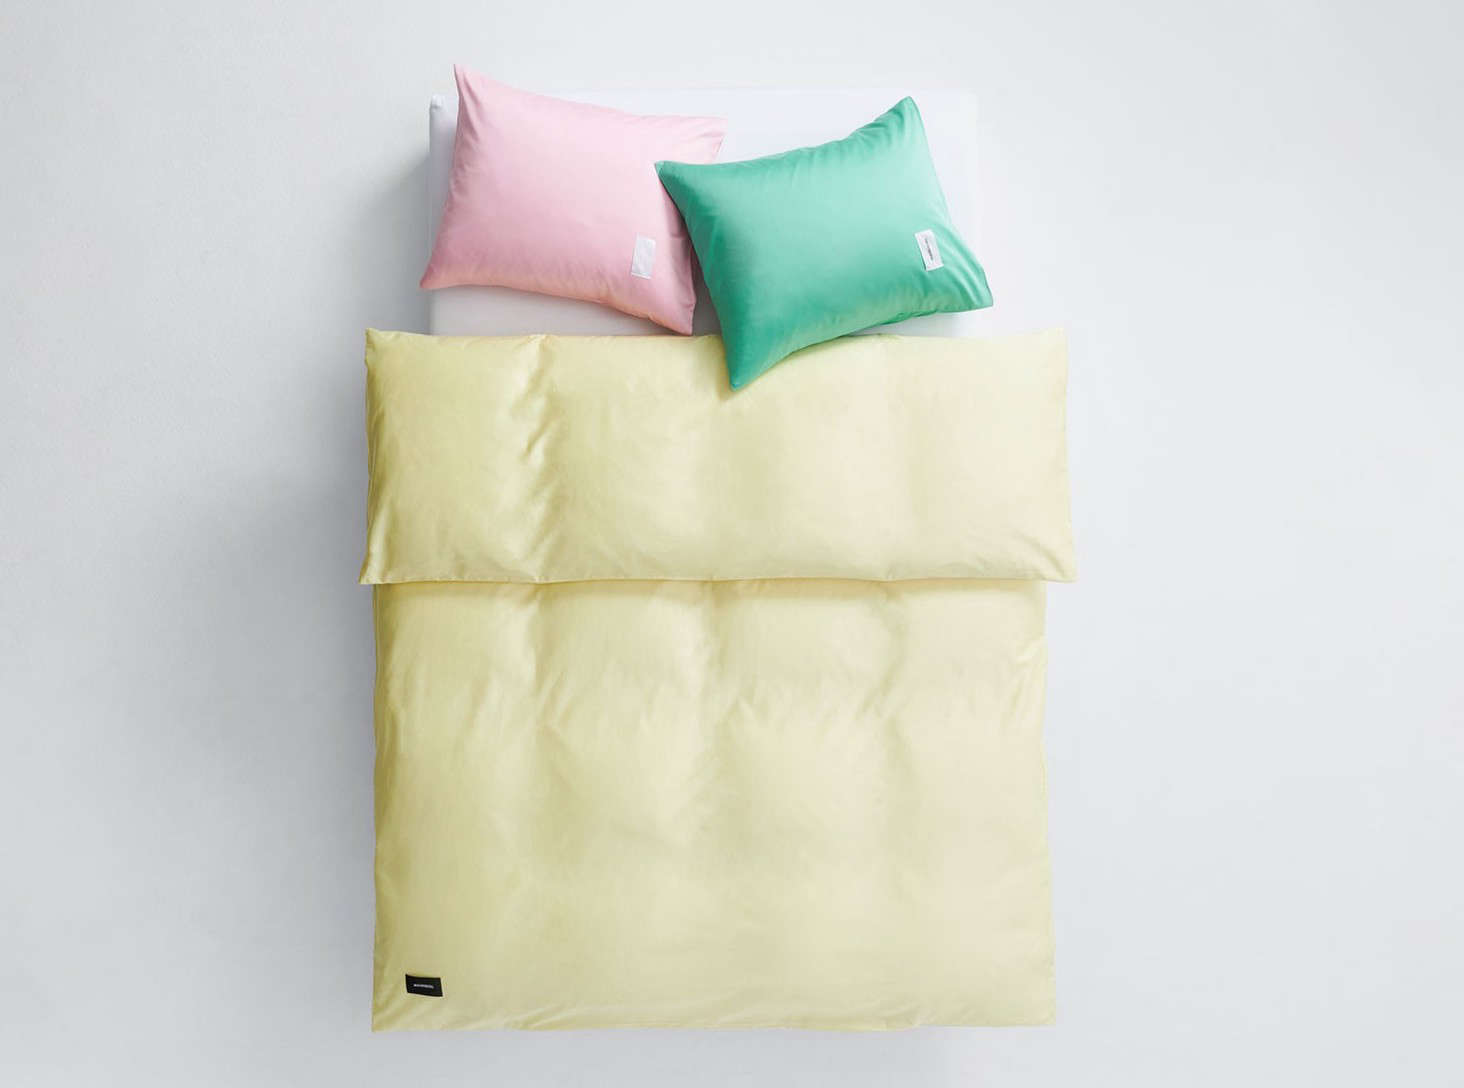 The Lemonade Duvet Cover in cotton sateen is tightly woven, which gives the textile a bit of weight and warmth.